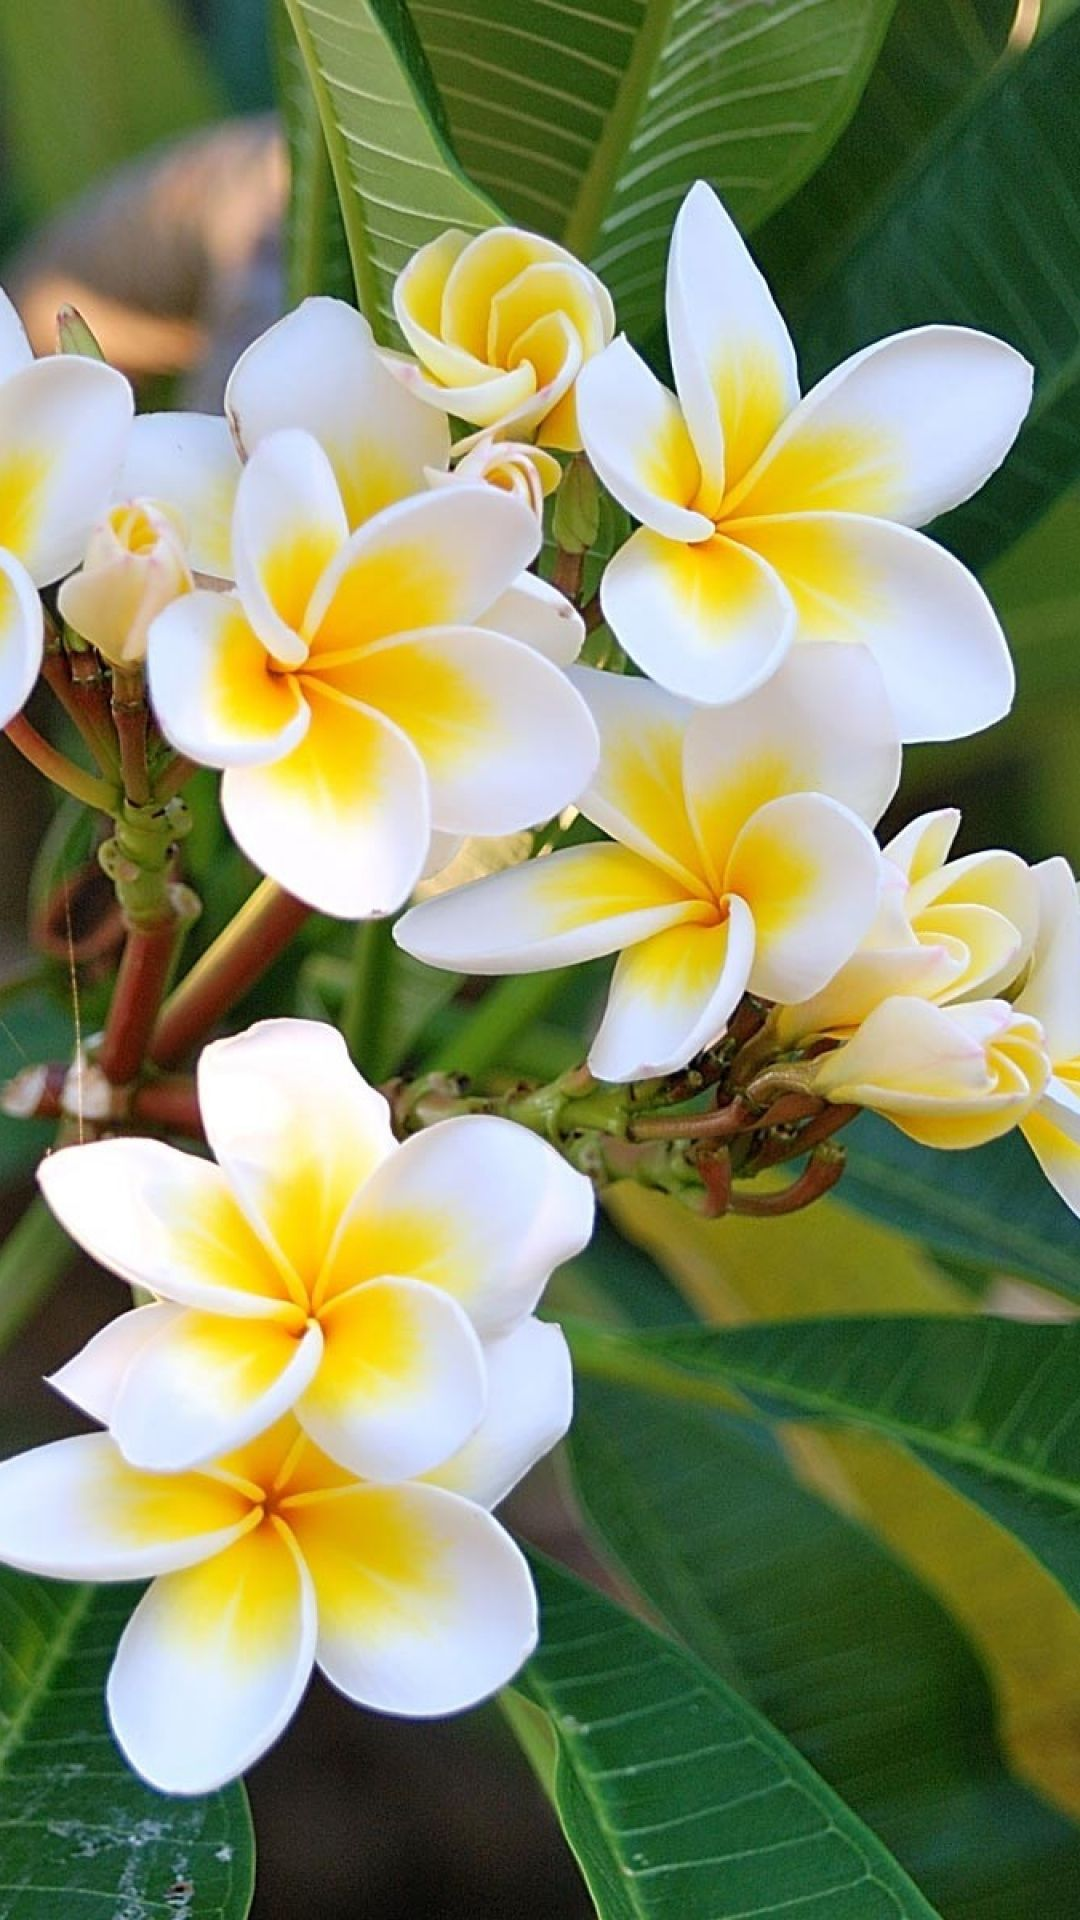 Plumeria Is A Genus Of Flowering Plants In The Dogbane Family Apocynaceae It Contains Primarily Deciduous Shrubs Beautiful Flowers Flower Seeds Orchid Flower